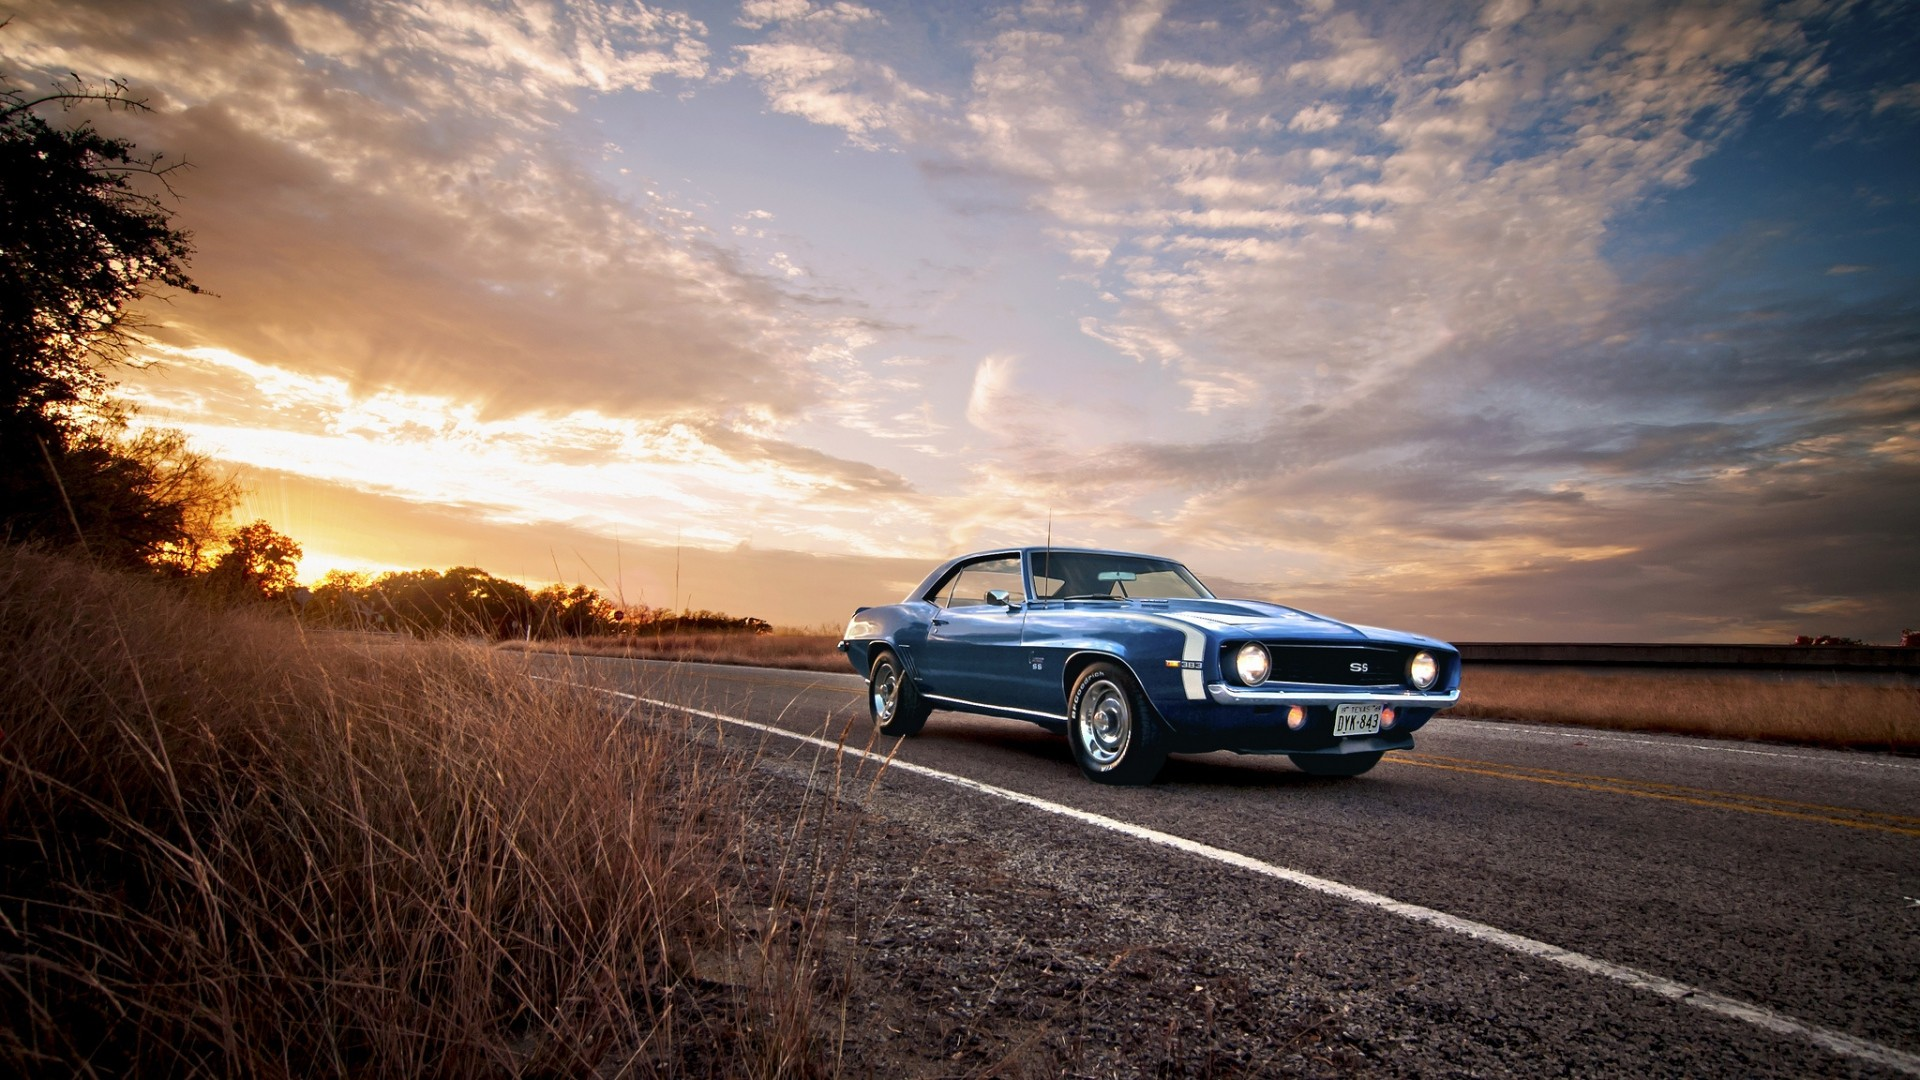 Res: 1920x1080, Download Wallpaper  ss, classic, american, camaro, chevrolet,  1969, blue Full HD 1080p HD Background